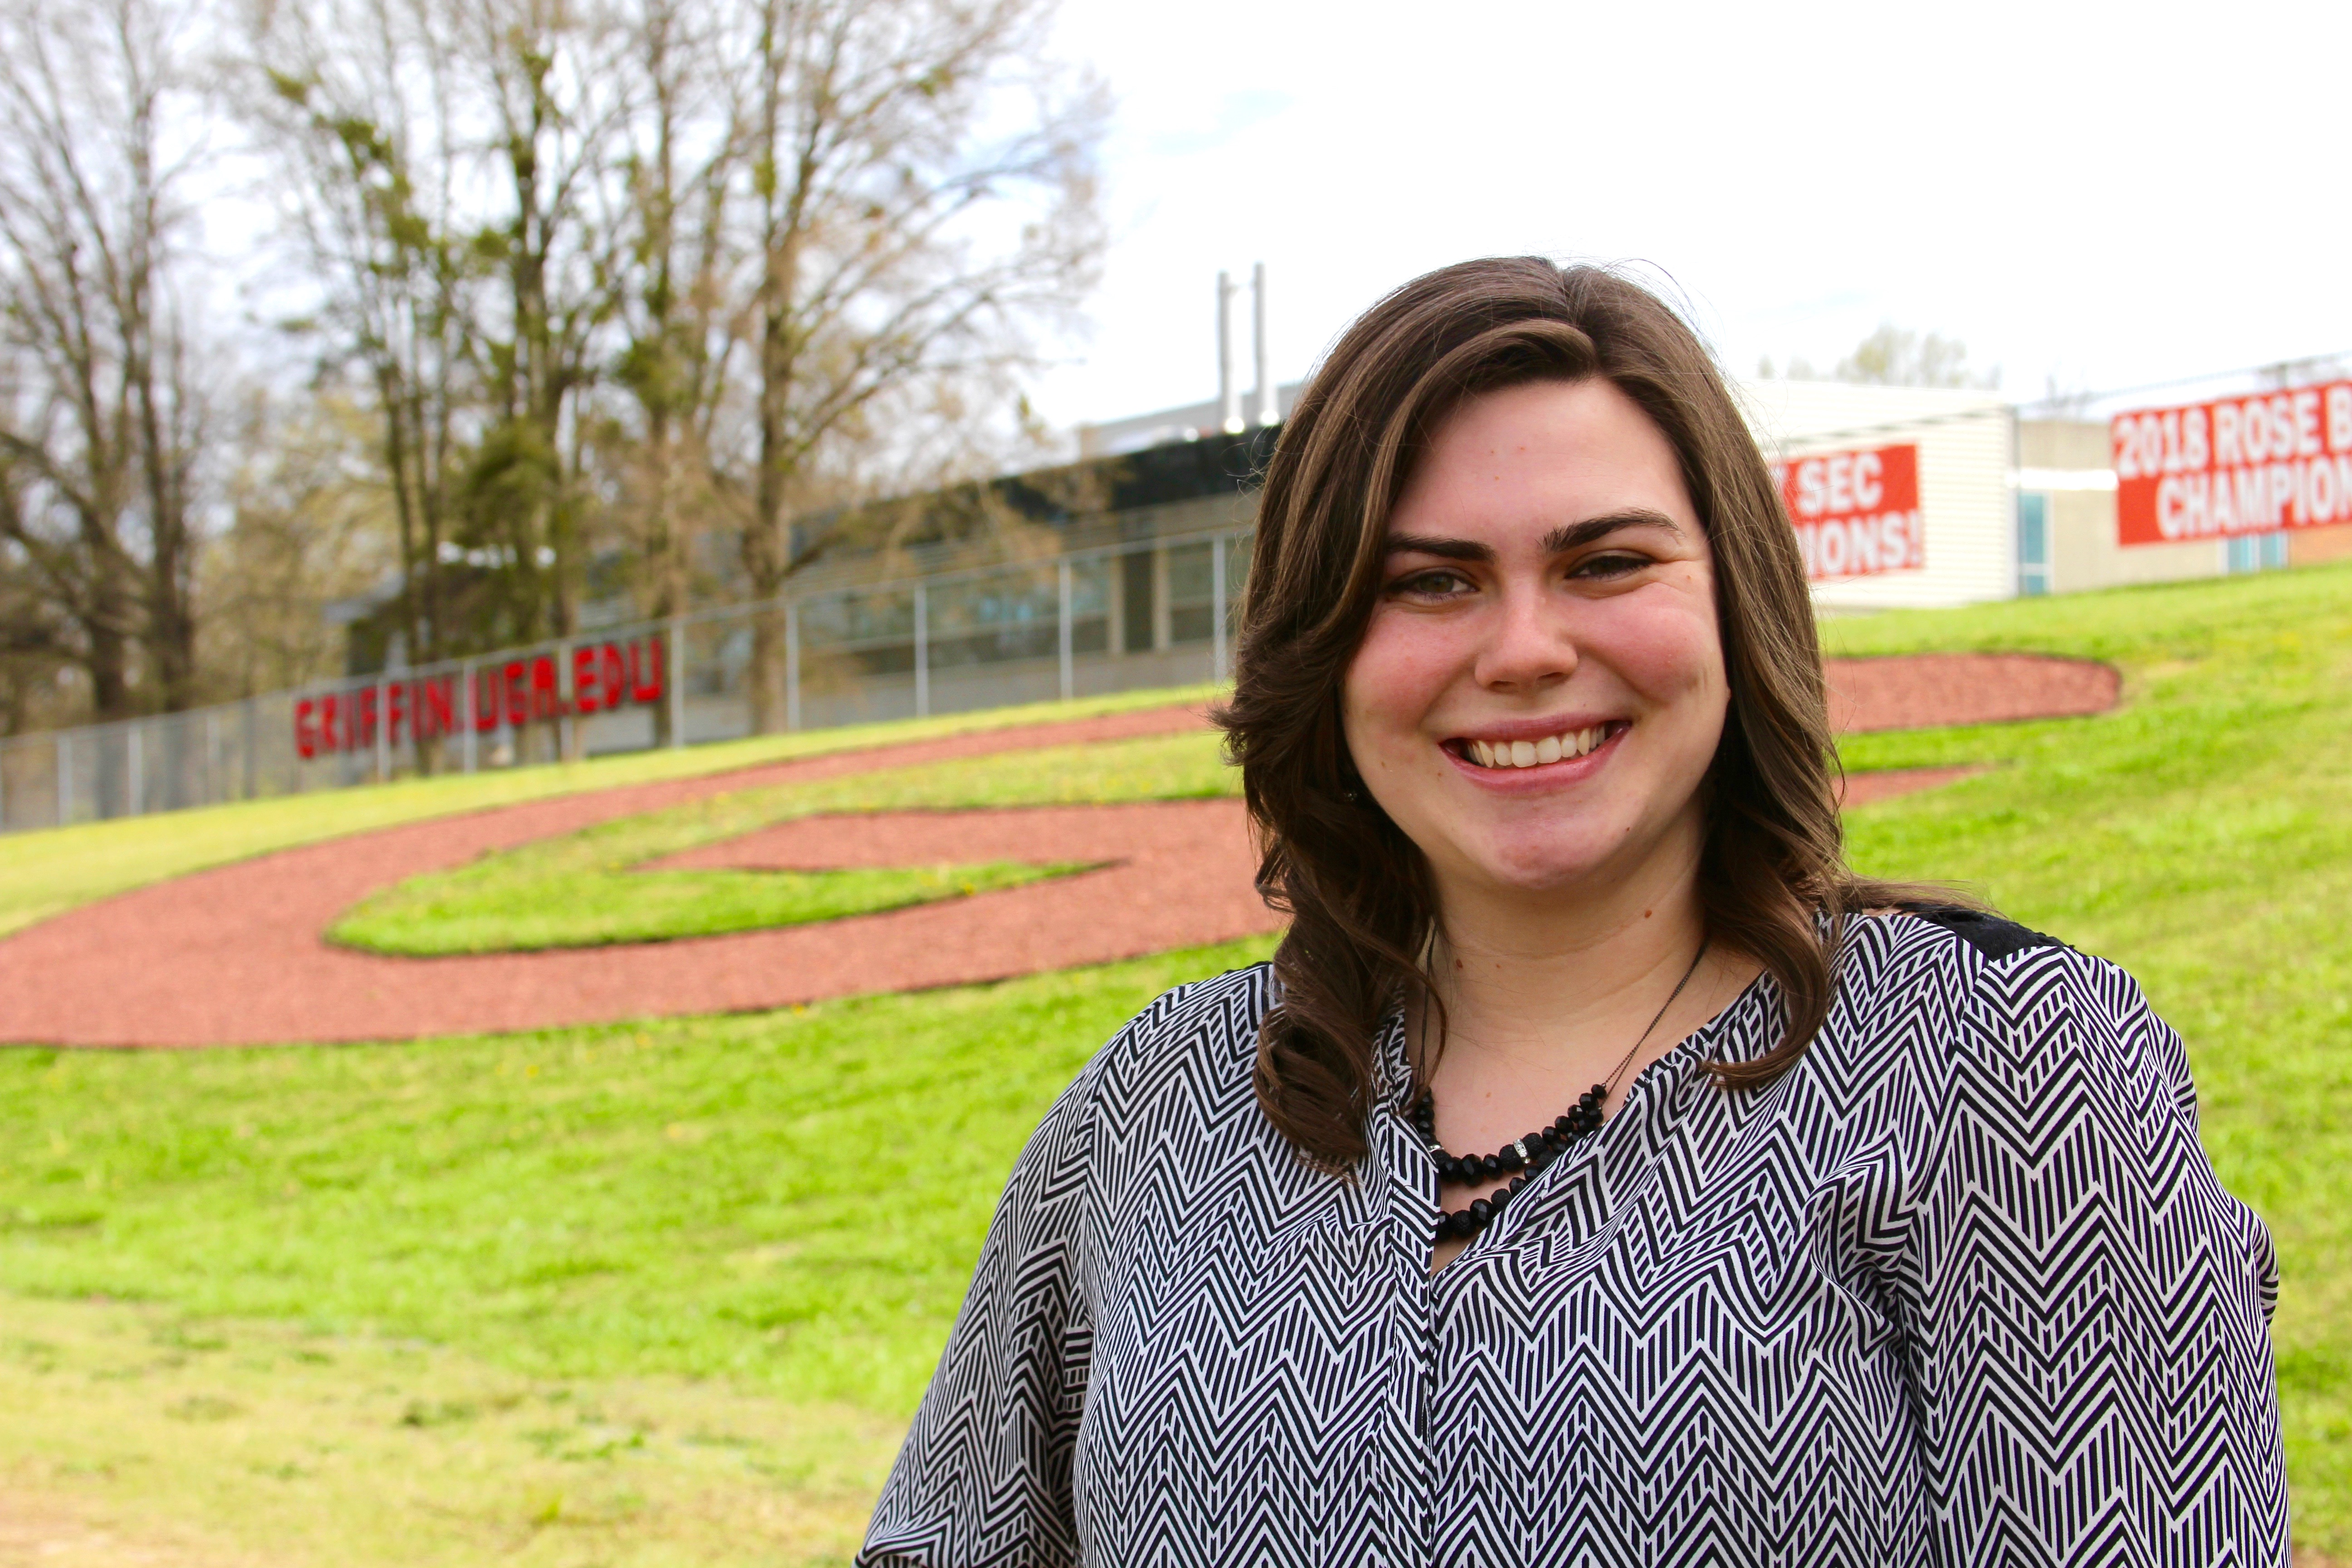 When Kathleen Chumbley Freeman was a student at UGA-Griffin, she served as a student ambassador and president of the campus's student advisory council. Now she has joined the staff of the campus as the program coordinator for the College of Agricultural and Environmental Sciences.